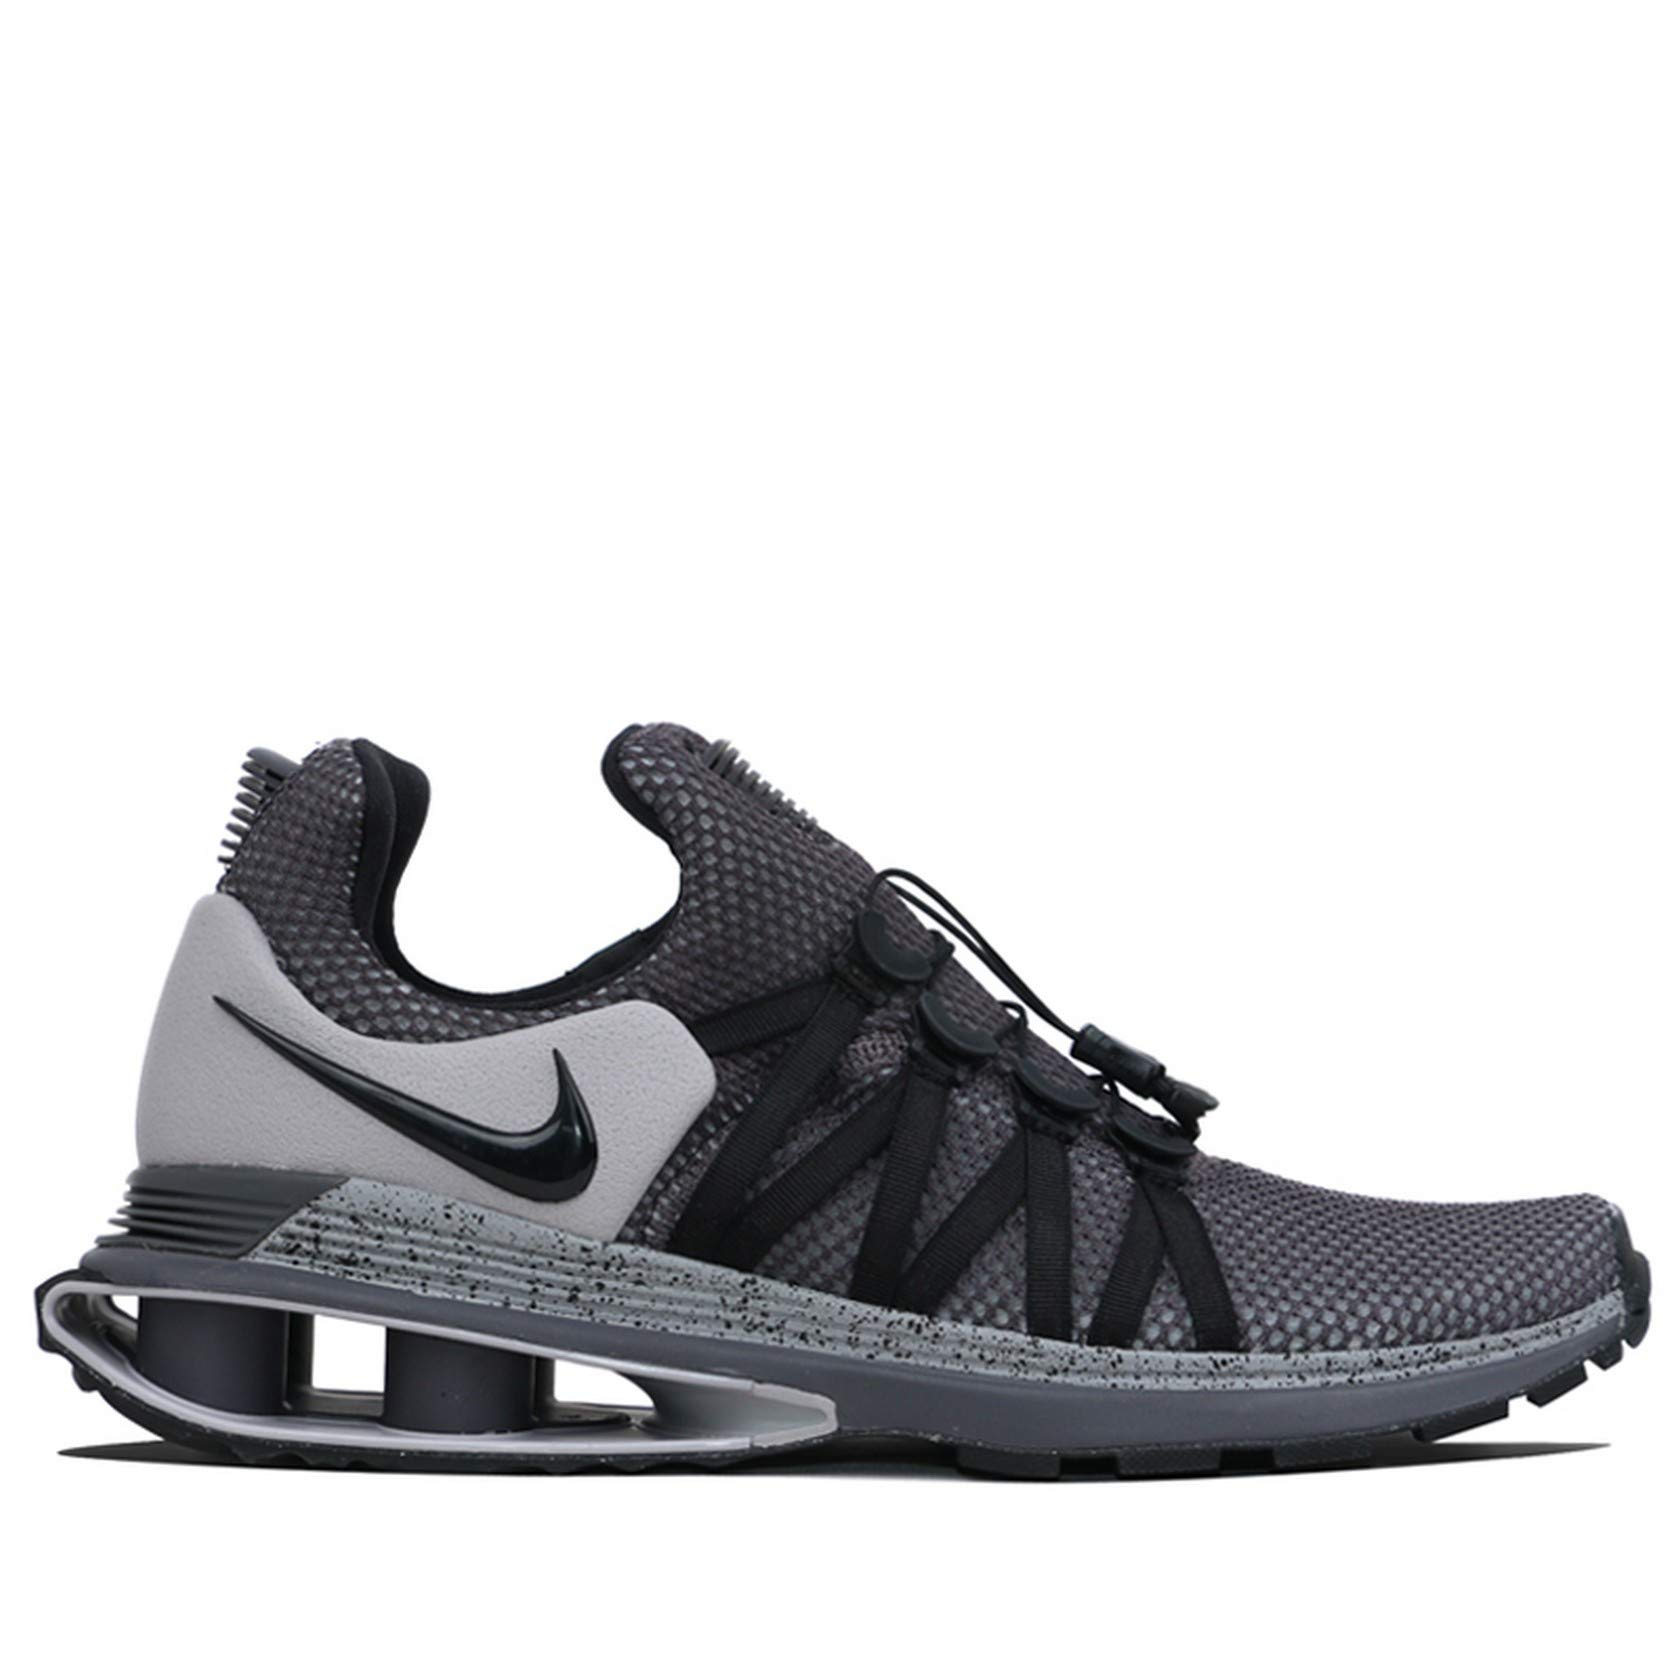 dec4fec66c4 Galleon - Nike Men s Shox Gravity Running Shoes Grey Black Size 10 D(M) US